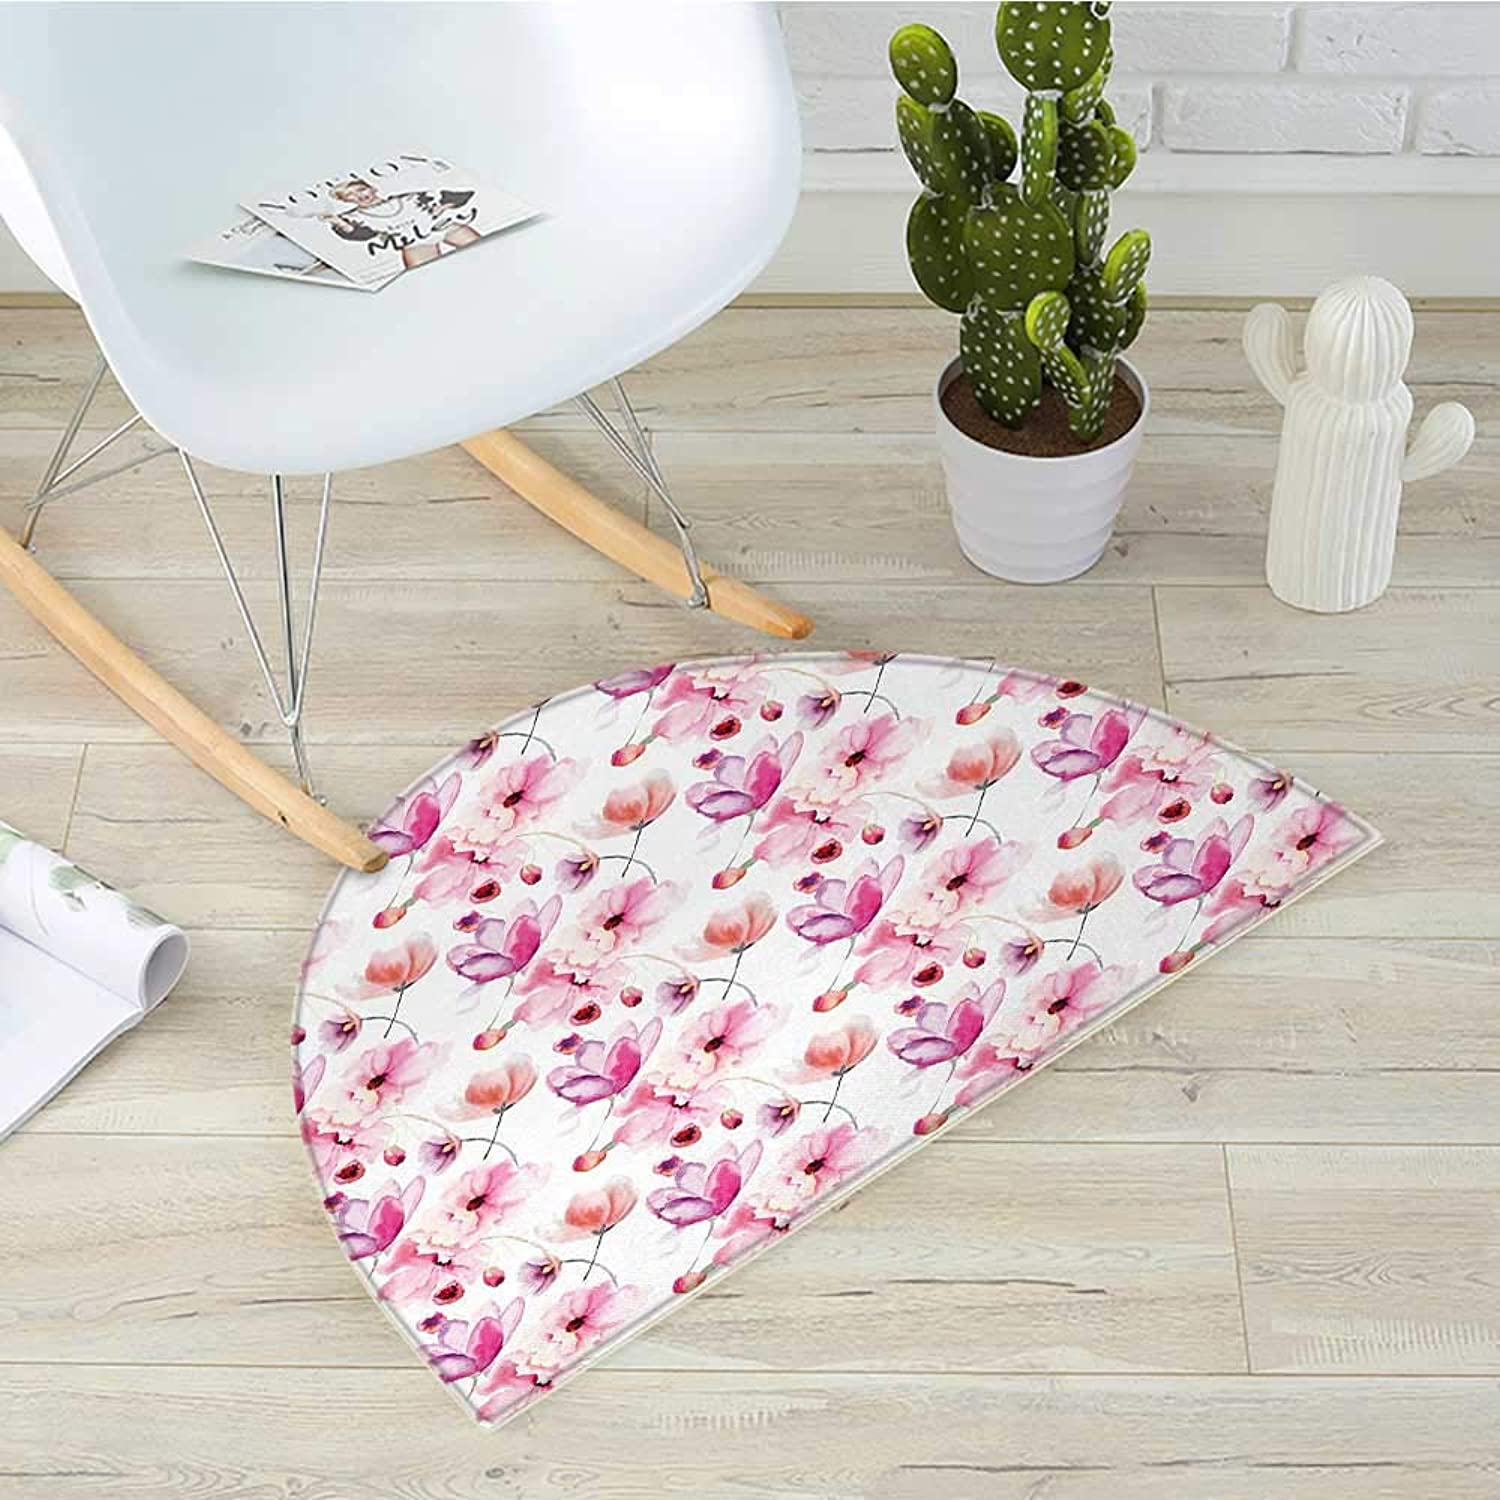 Floral Half Round Door mats Watercolor Painting Style Blooming Flowers Spring Nature Botanical Artwork Bathroom Mat H 43.3  xD 64.9  Pink Purple Coral